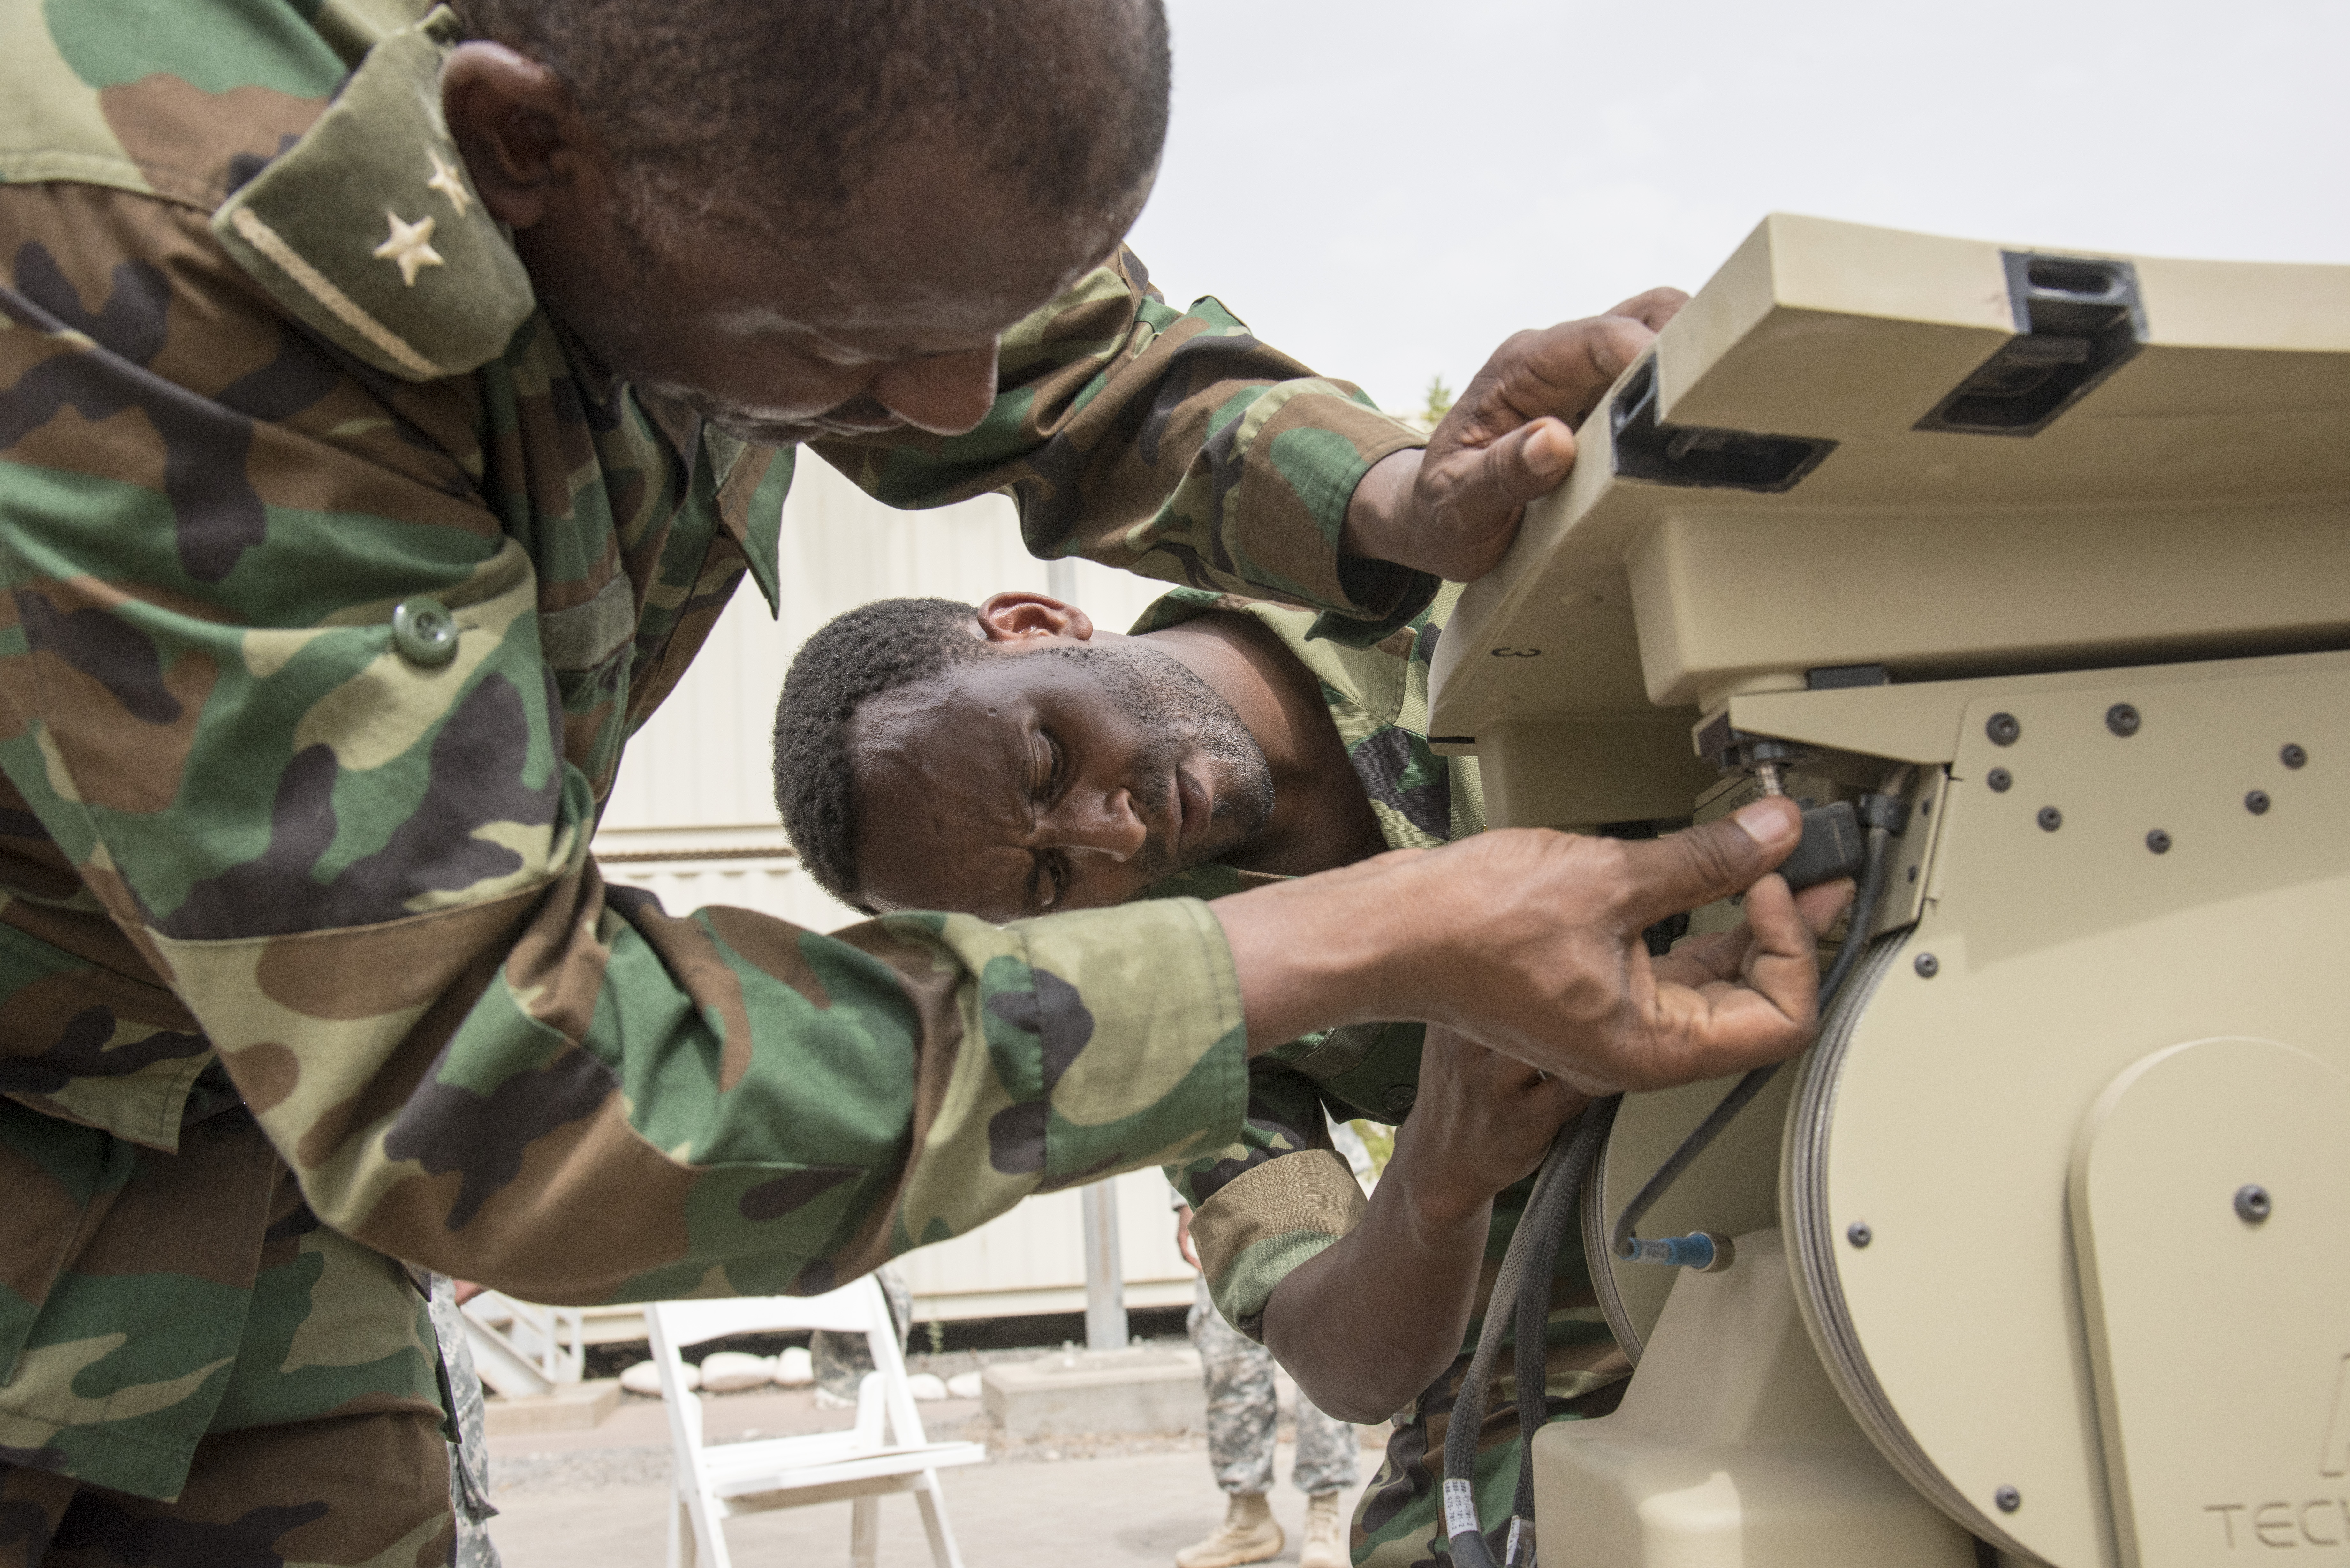 Members of the Ethiopian National Defense Force (ENDF) assemble the dish of a U.S. Africa Command Data Sharing Network (ADSN) terminal at Camp Lemonnier, Djibouti, Aug 18, 2015.  The ADSN terminal is an enclosed network, meaning it never connects to the internet, and is used by African Mission in Somali forces for field communications. Its setup and use was part of a multi-week ADSN course designed to broaden communication interoperability between host nation security forces, and was hosted by communications and intelligence personnel assigned to Combined Joint Task Force-Horn of Africa. (U.S. Air Force photo by Staff Sgt. Nathan Maysonet/released)